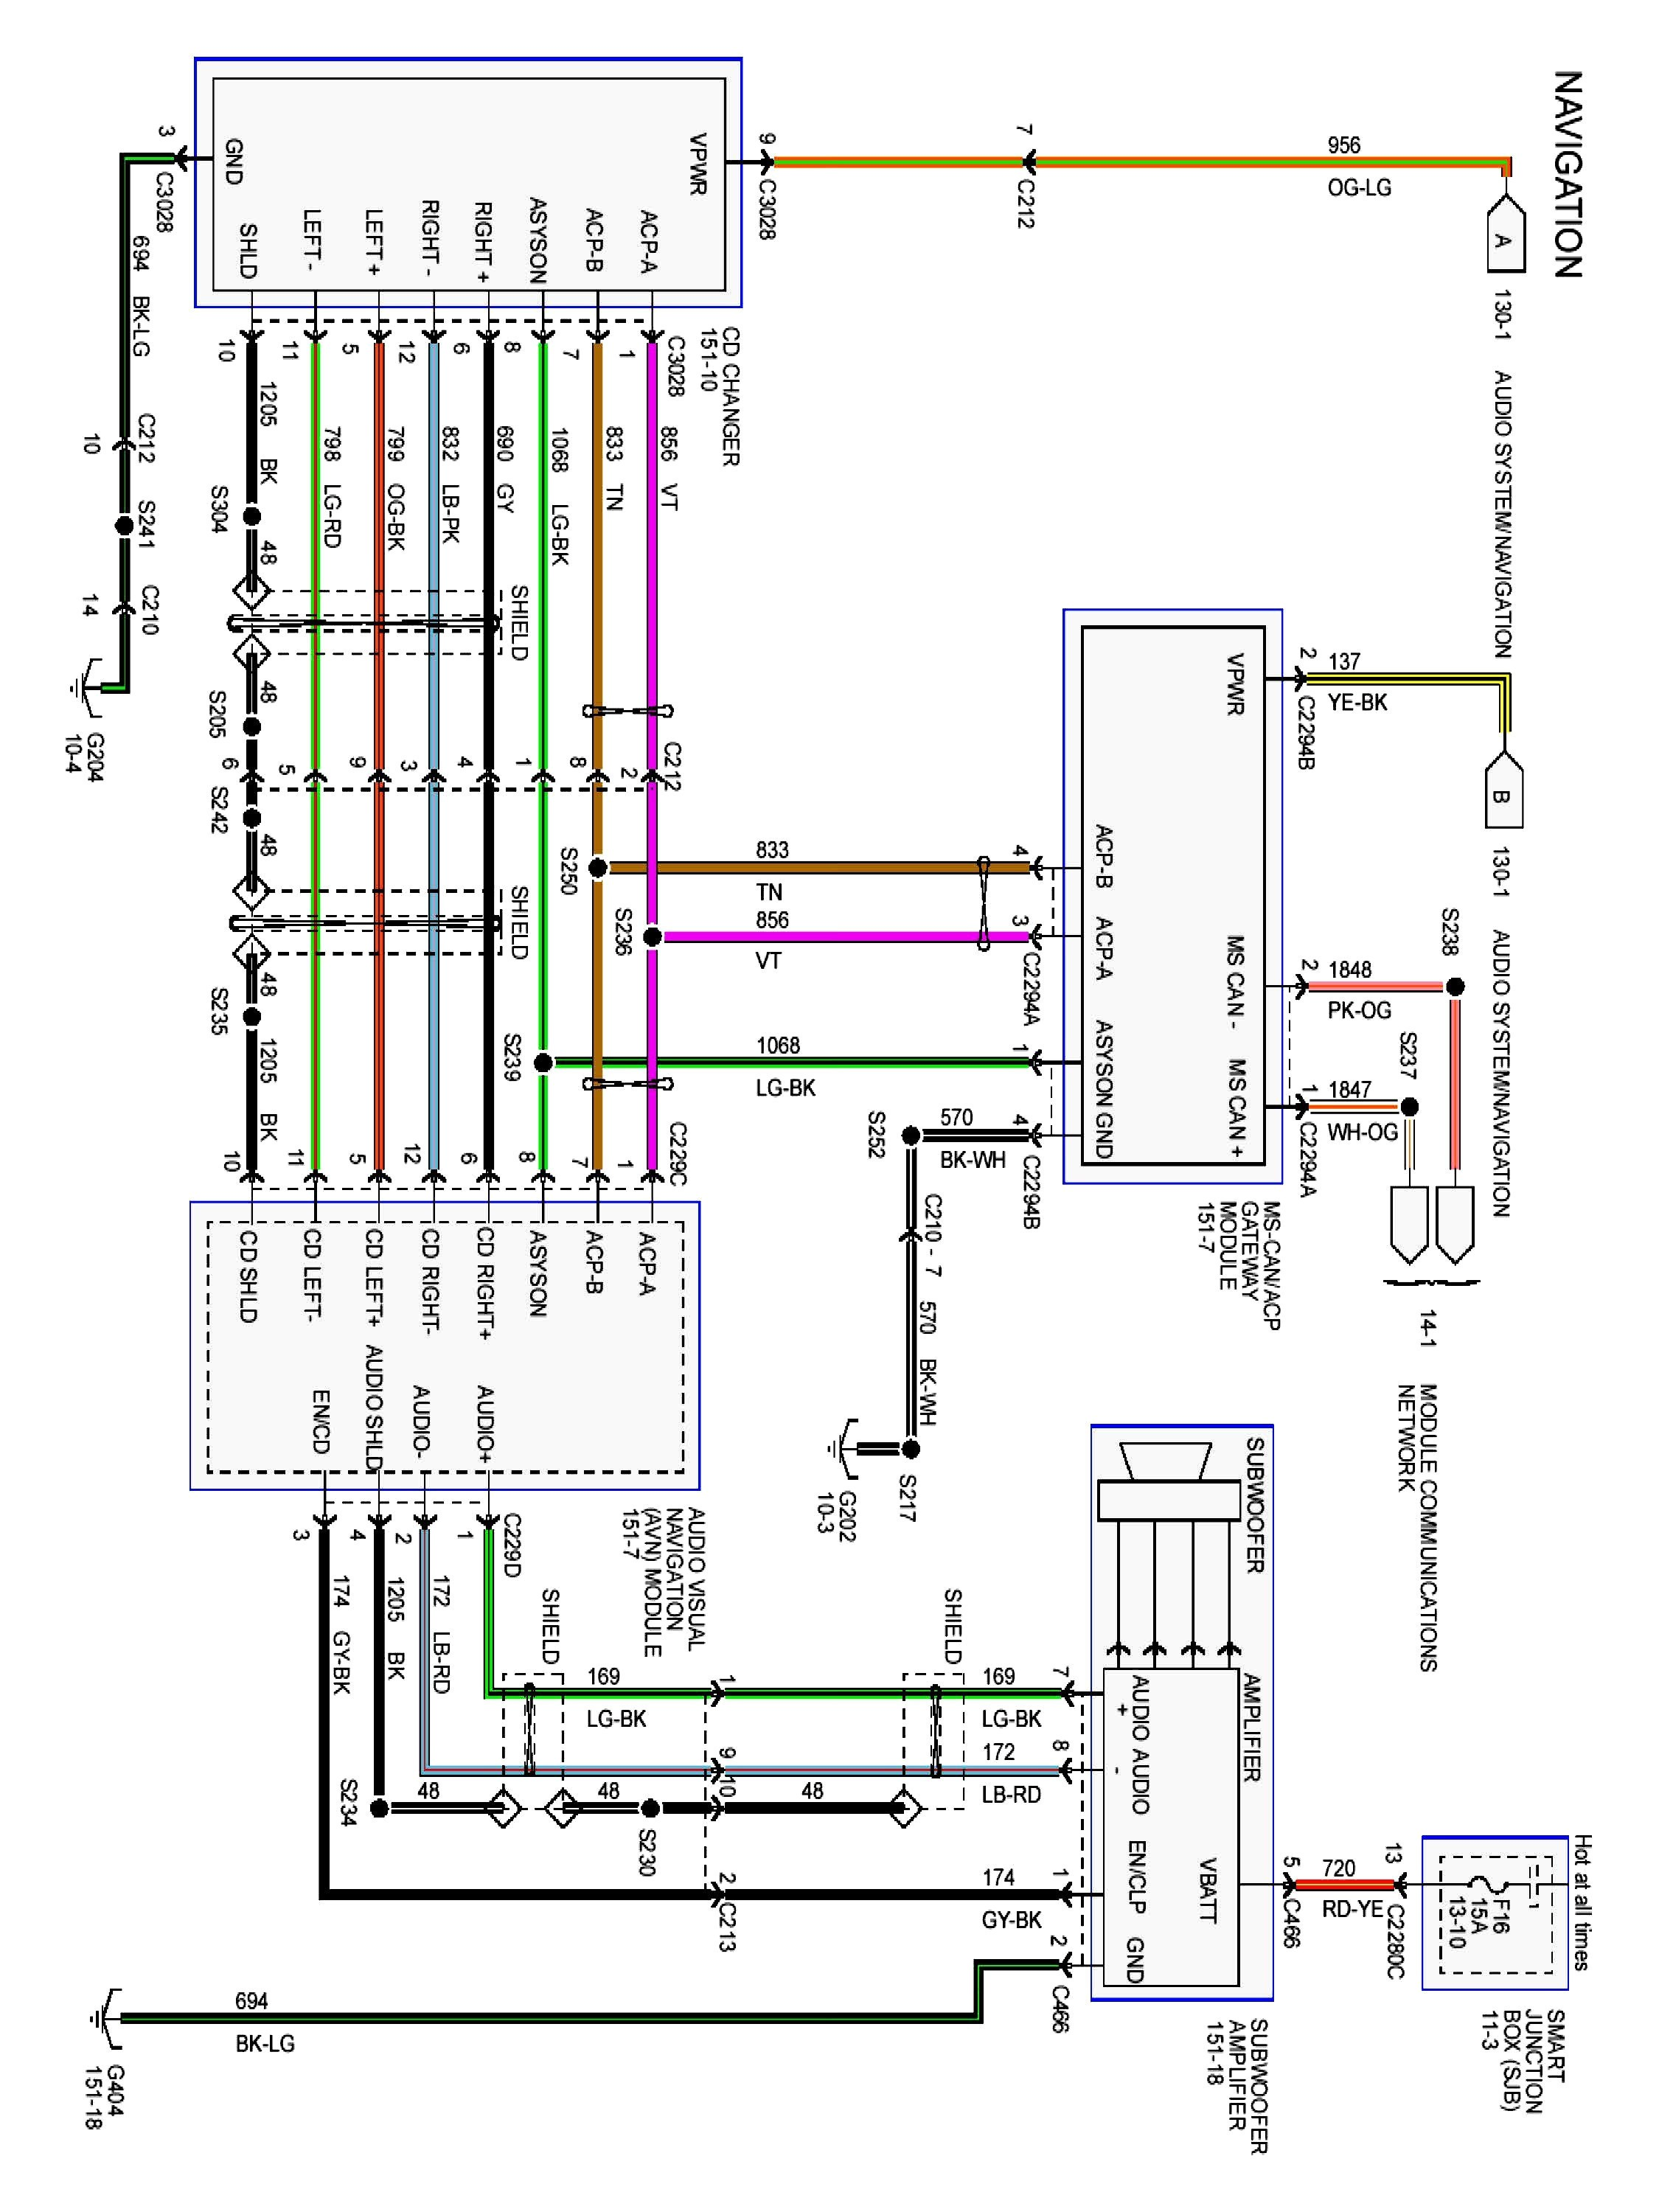 2008 ford wiring diagrams - wiring diagram book end-more -  end-more.prolocoisoletremiti.it  prolocoisoletremiti.it